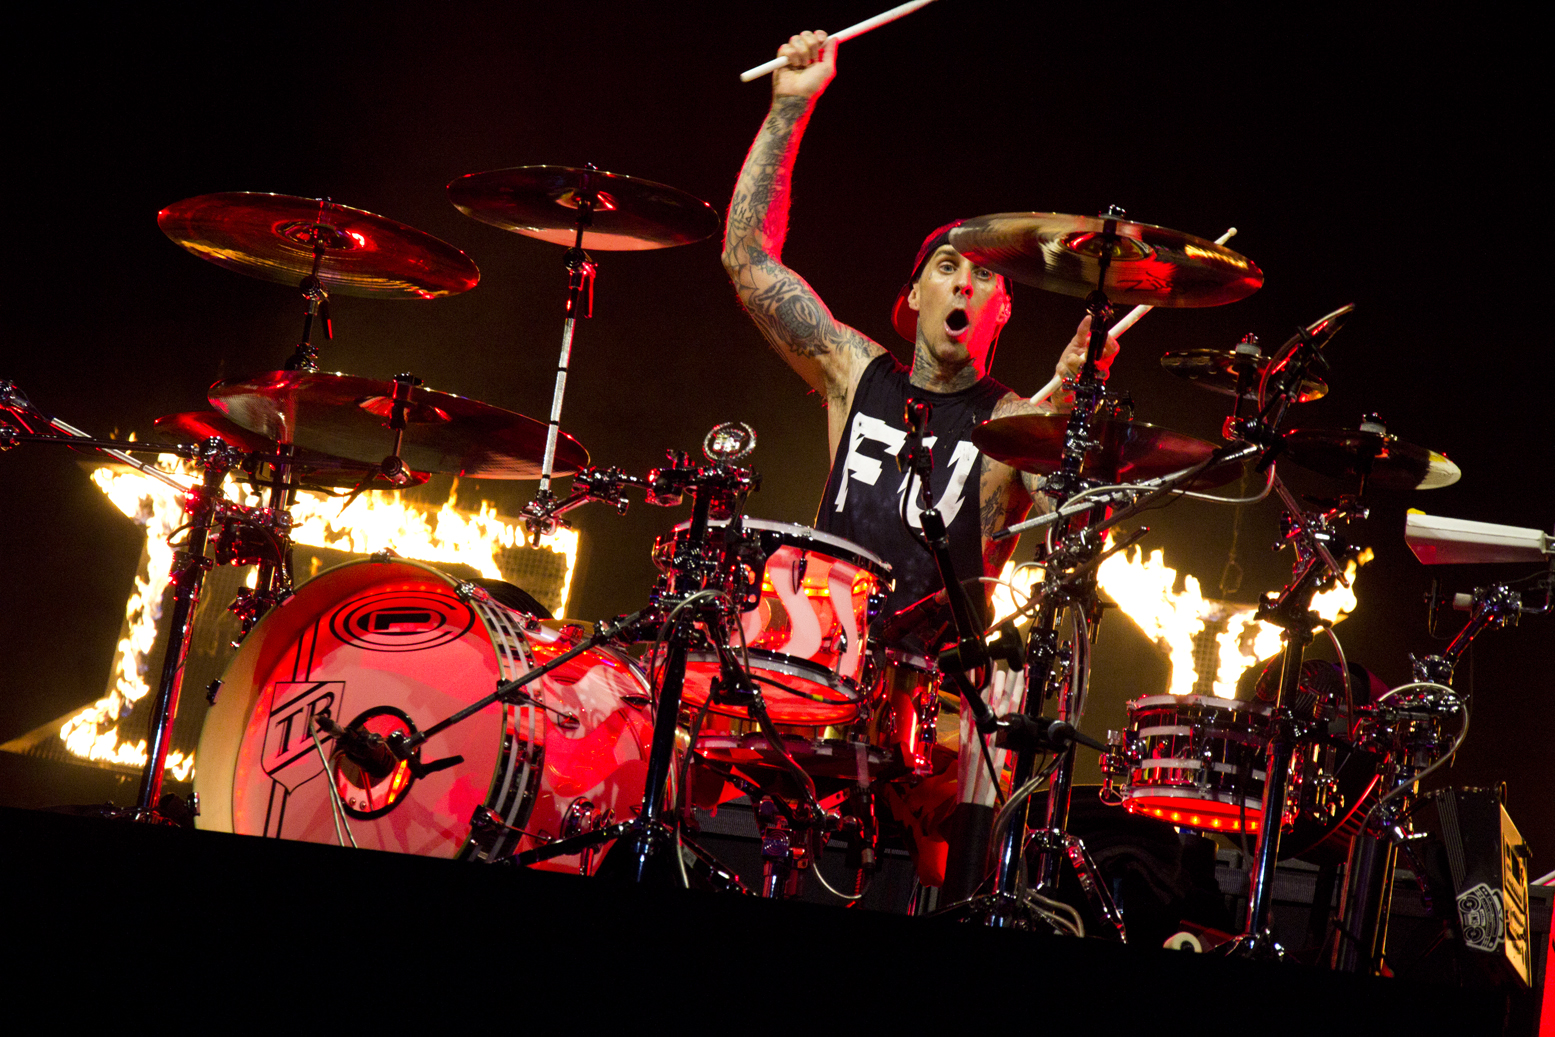 Travis Barker blink 182 liverpool echo arena